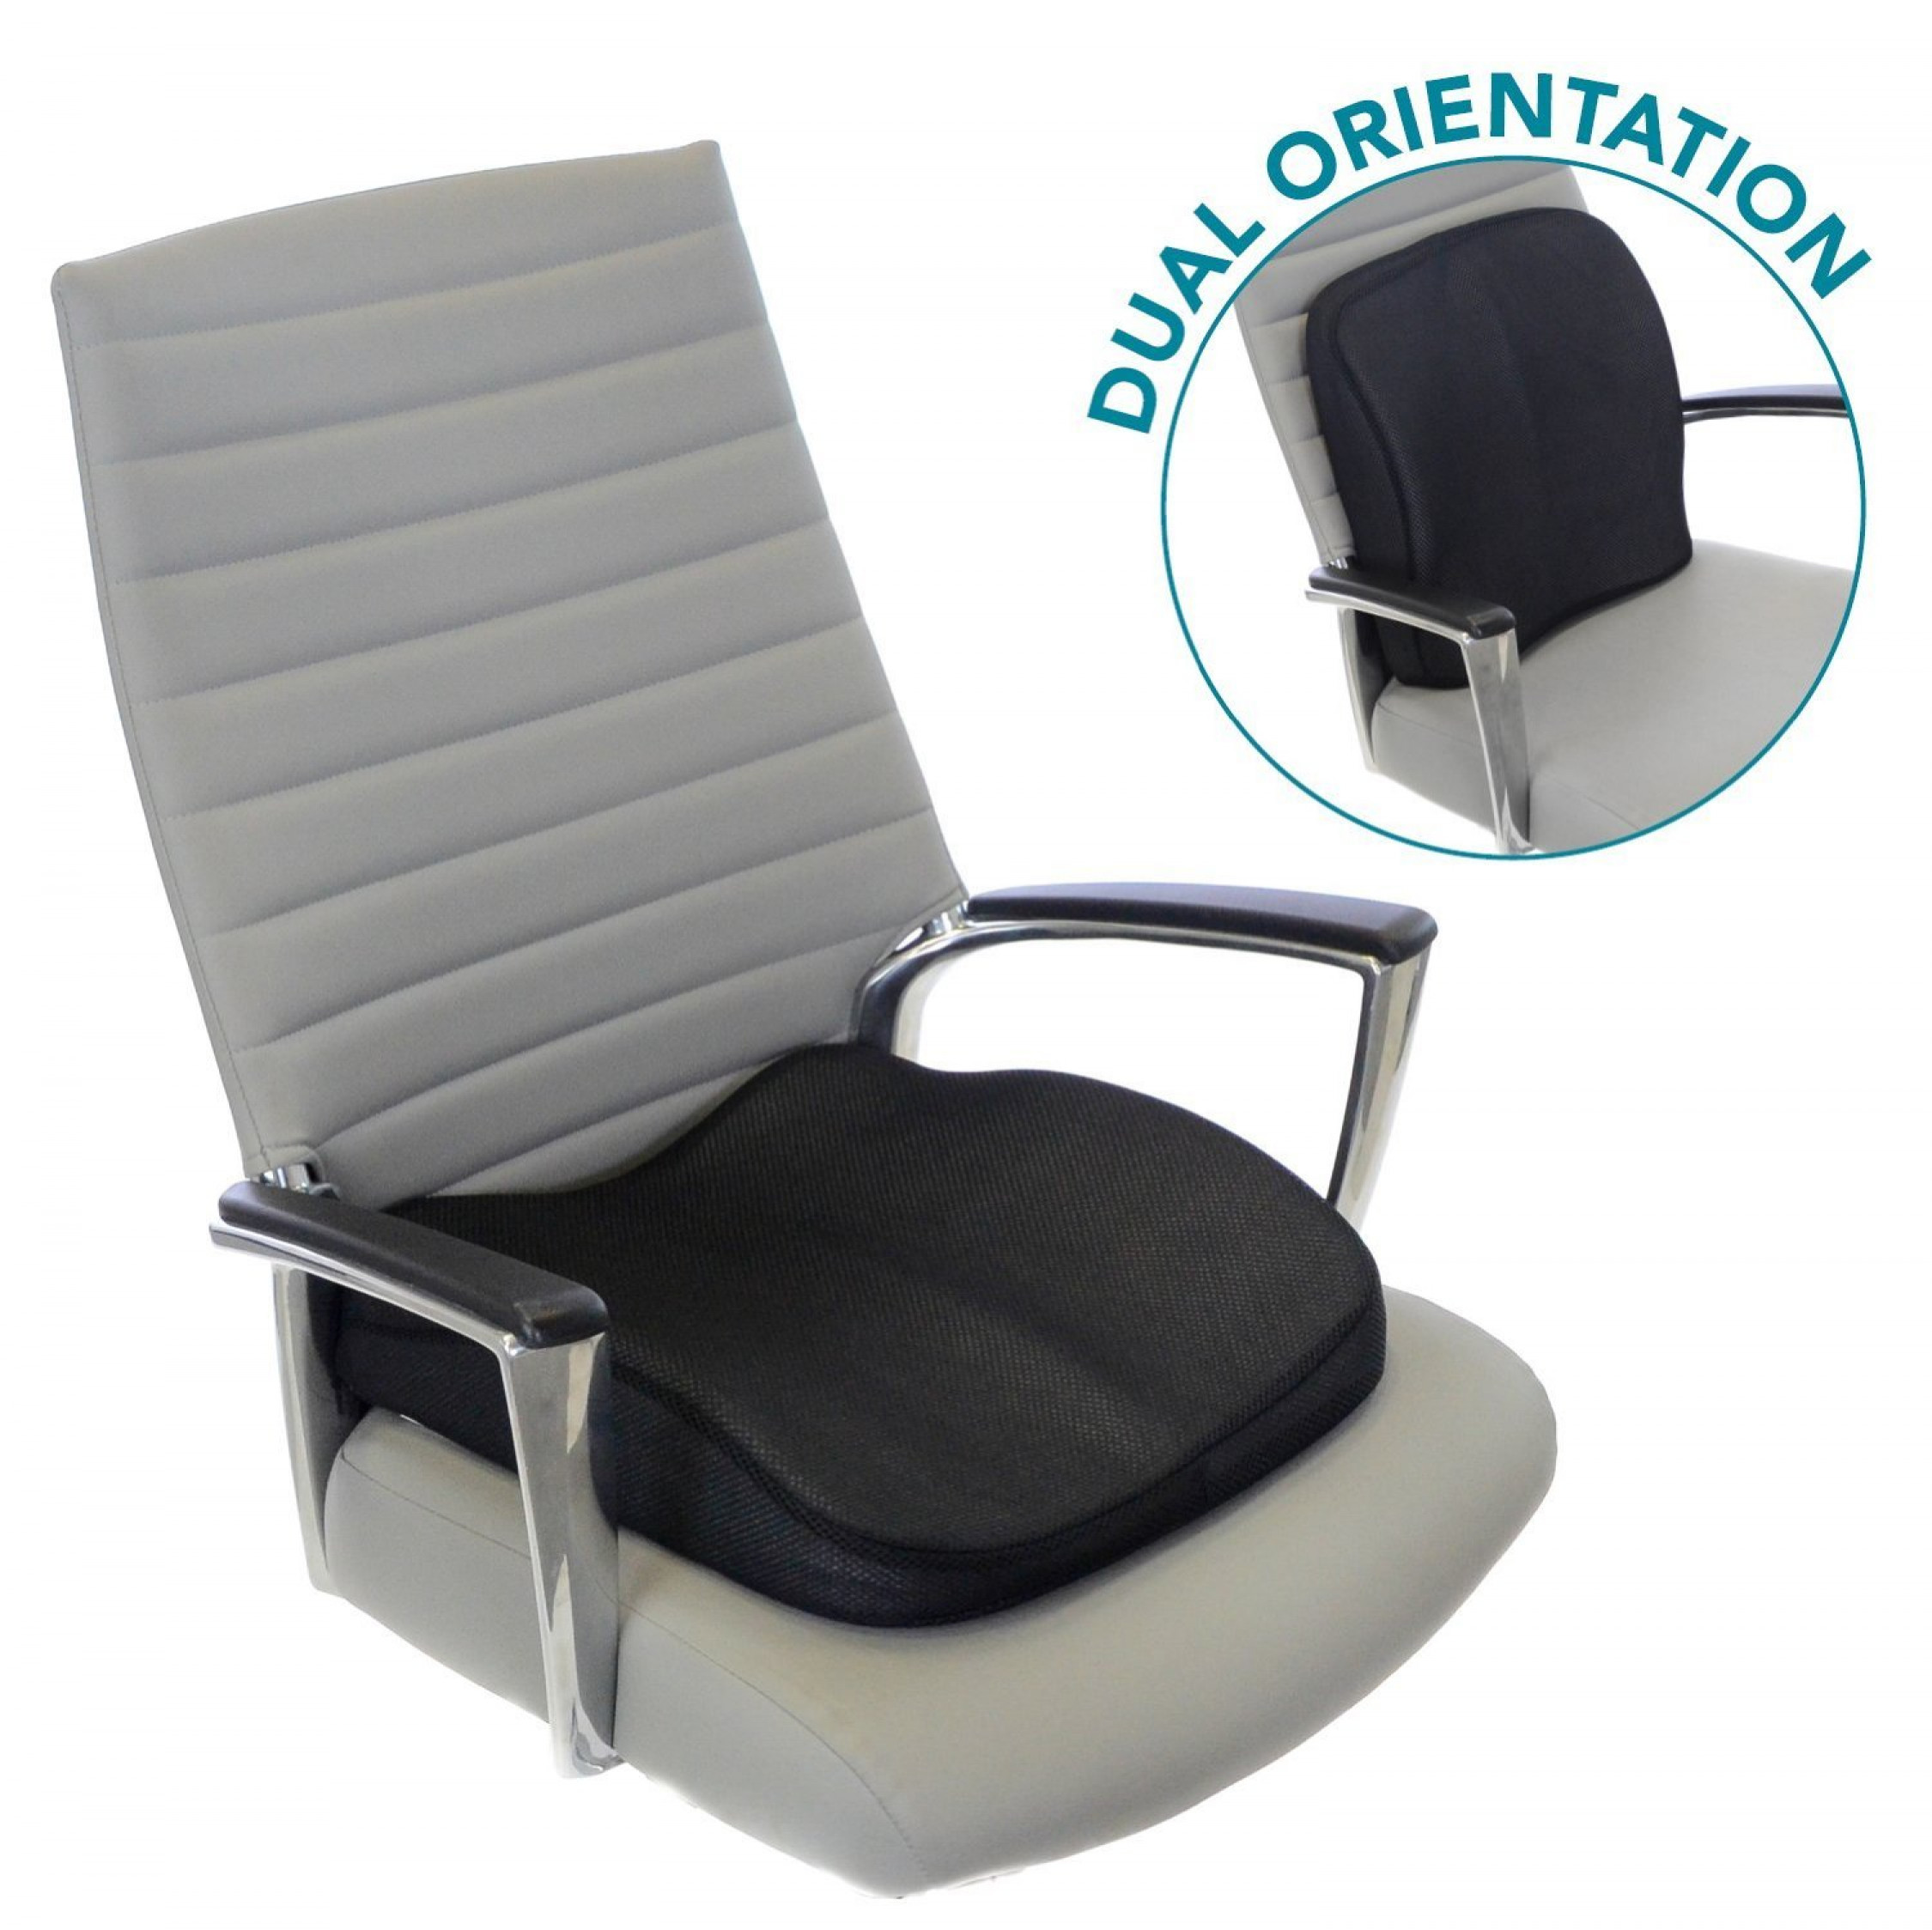 Lower Back Support For Office Chair Memory Foam Seat Cushion For Lower Back Support And Seat